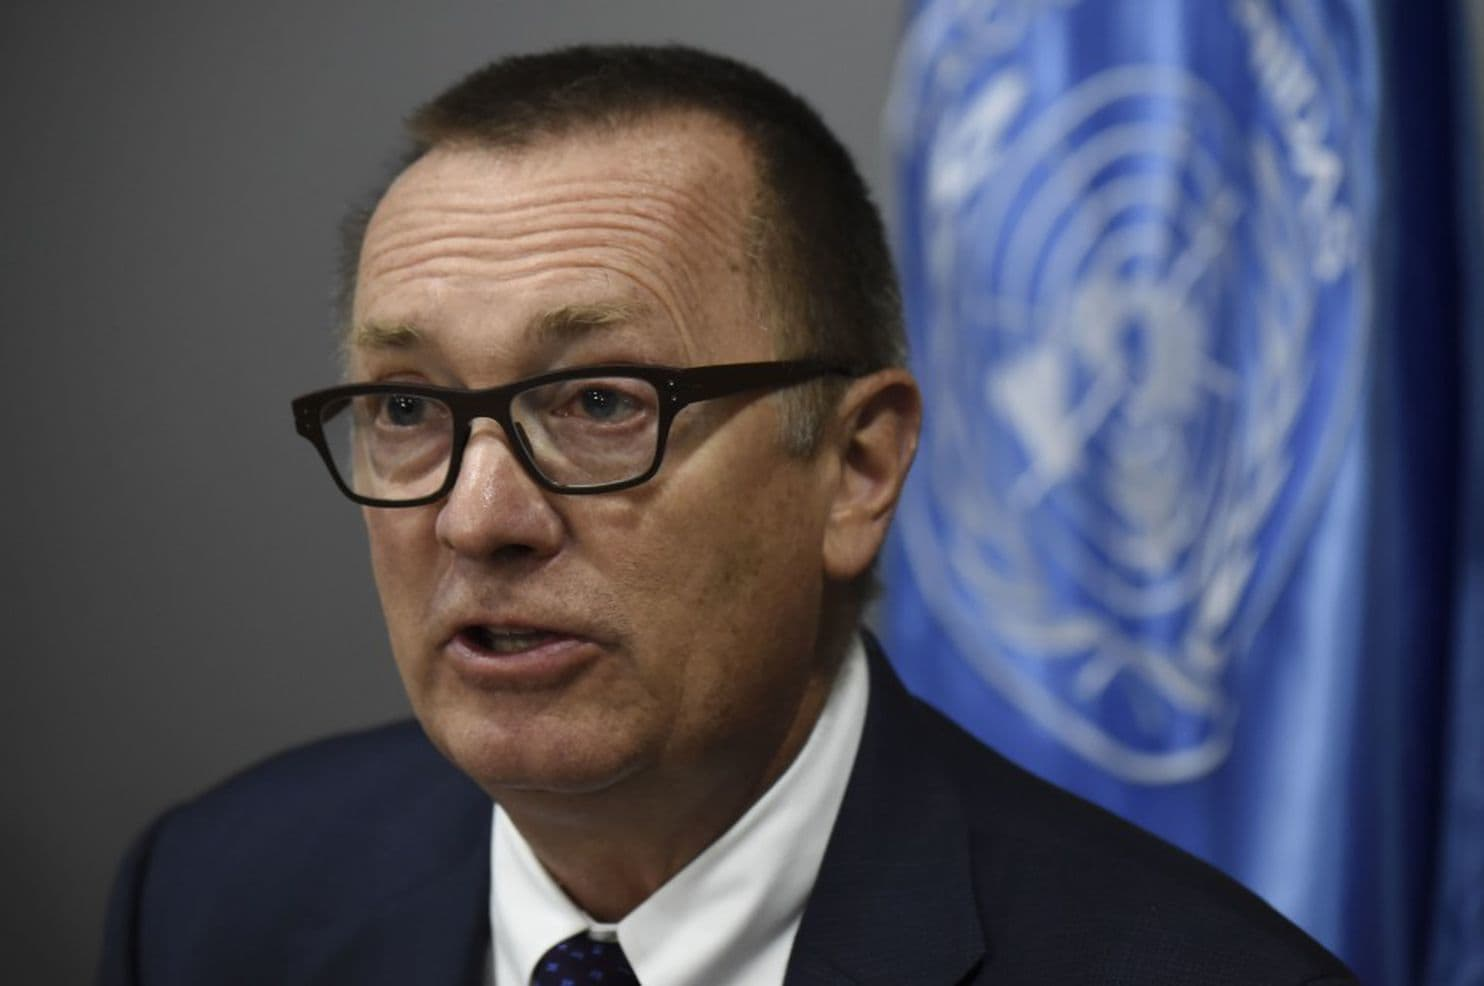 Director of Political Affairs for the UN Jeffrey Feltman